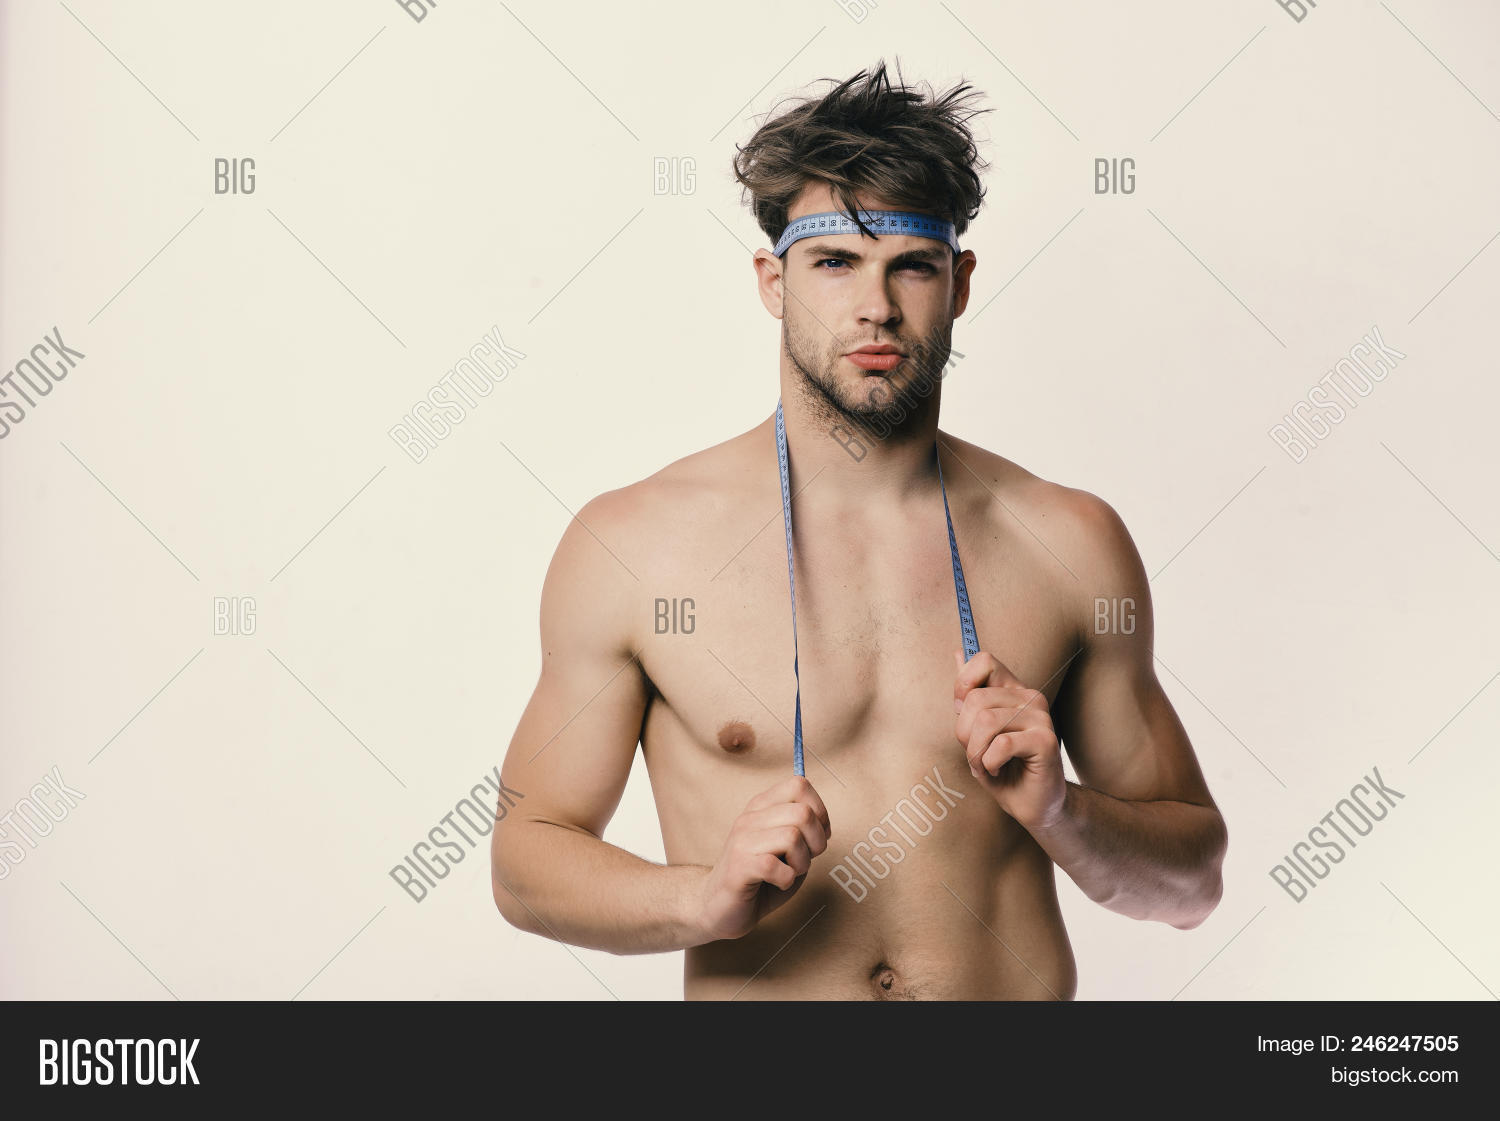 Serious face guy naked pic 717